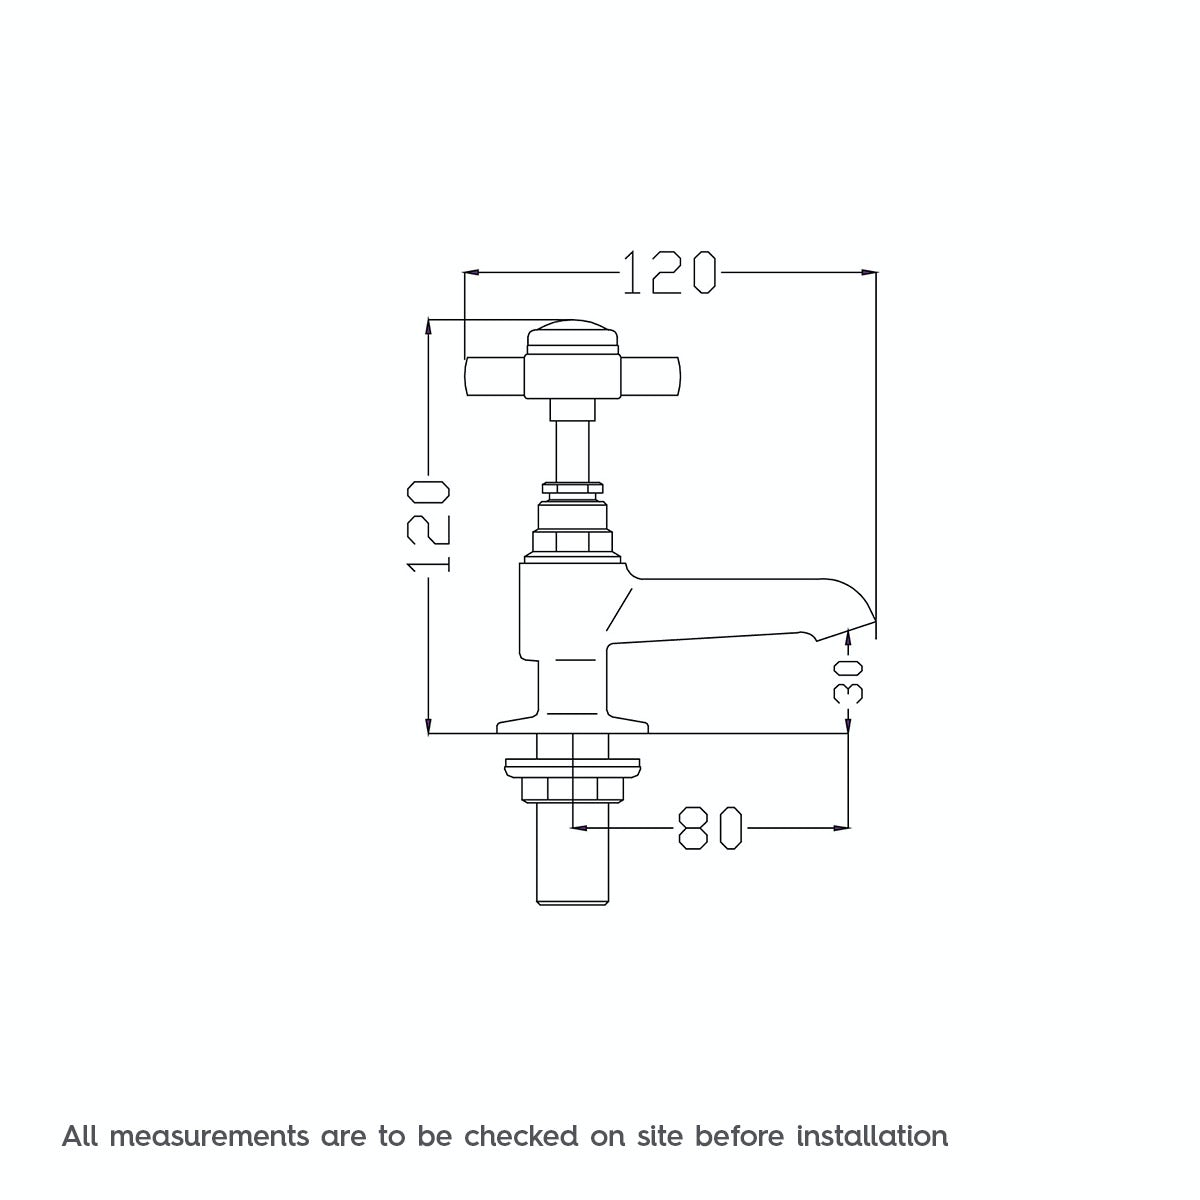 Dimensions for The Bath Co. Dulwich basin pillar taps